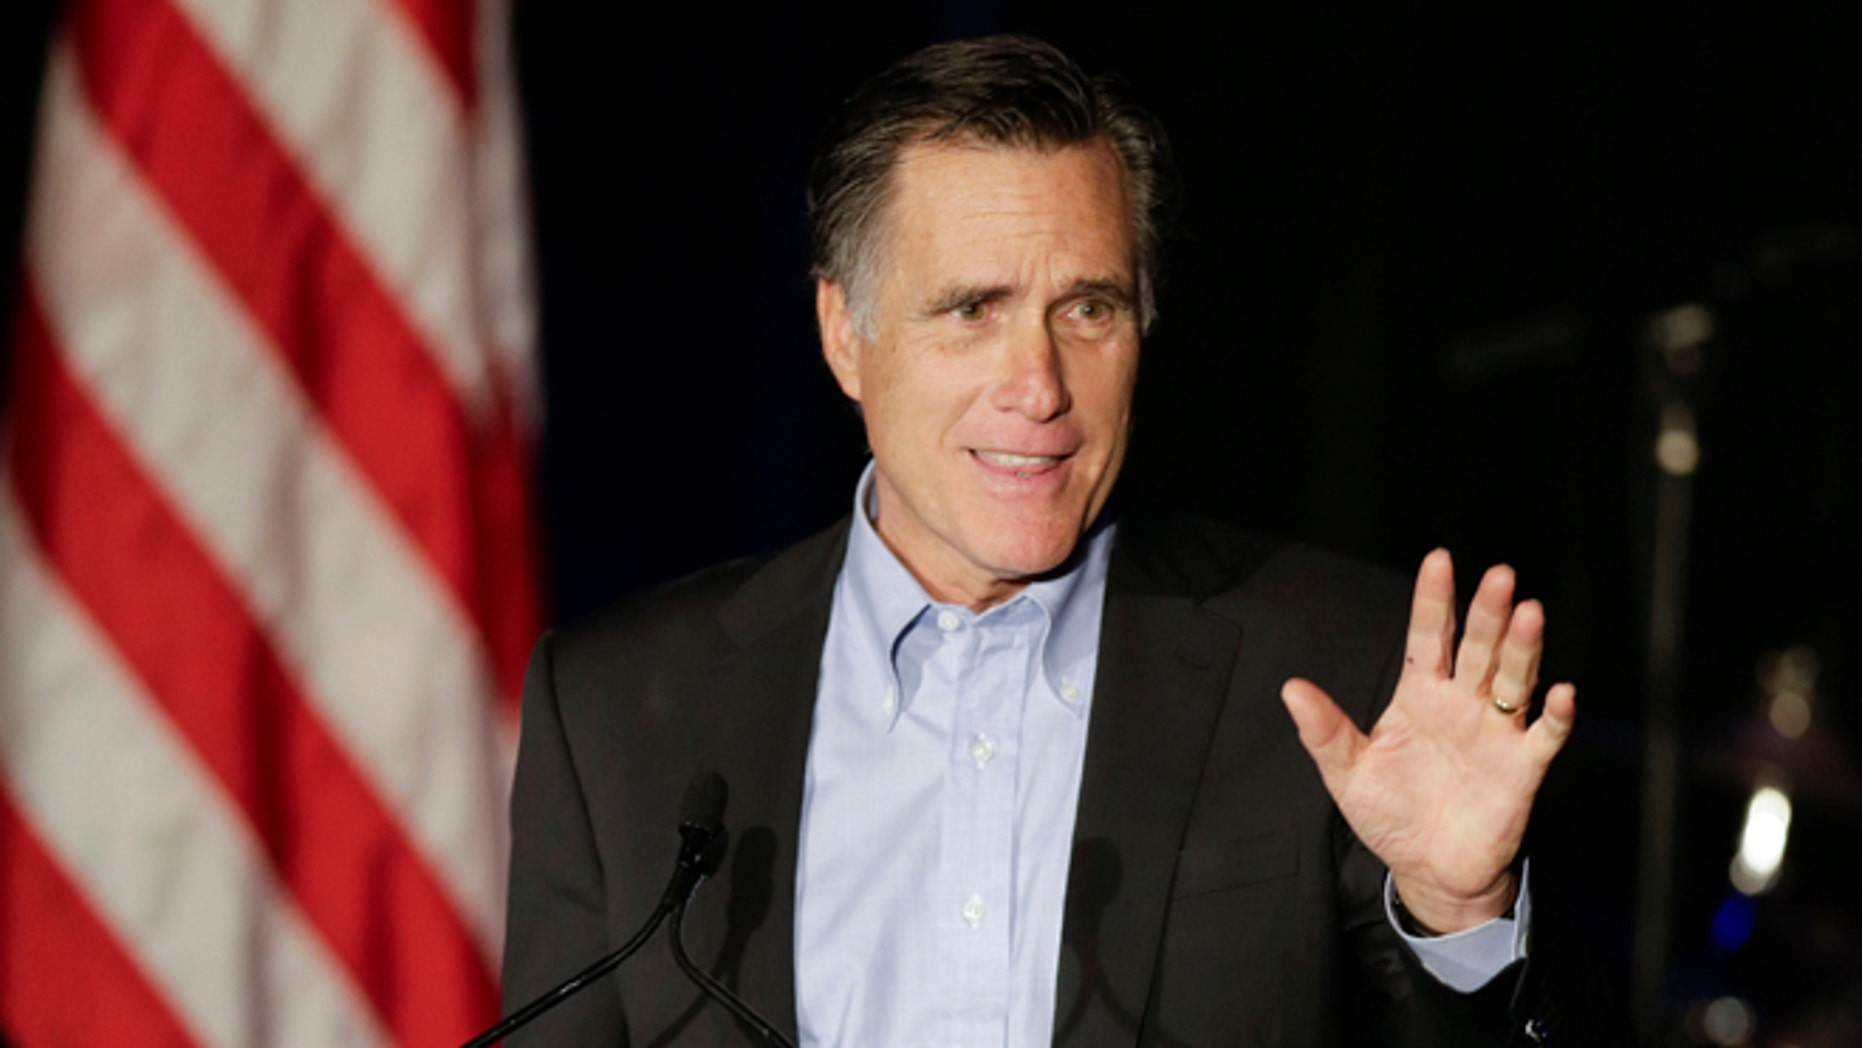 Mitt Romney, the former Republican presidential nominee, speaks during the Republican National Committee's winter meeting aboard the USS Midway Museum Friday, Jan. 16, 2015, in San Diego.